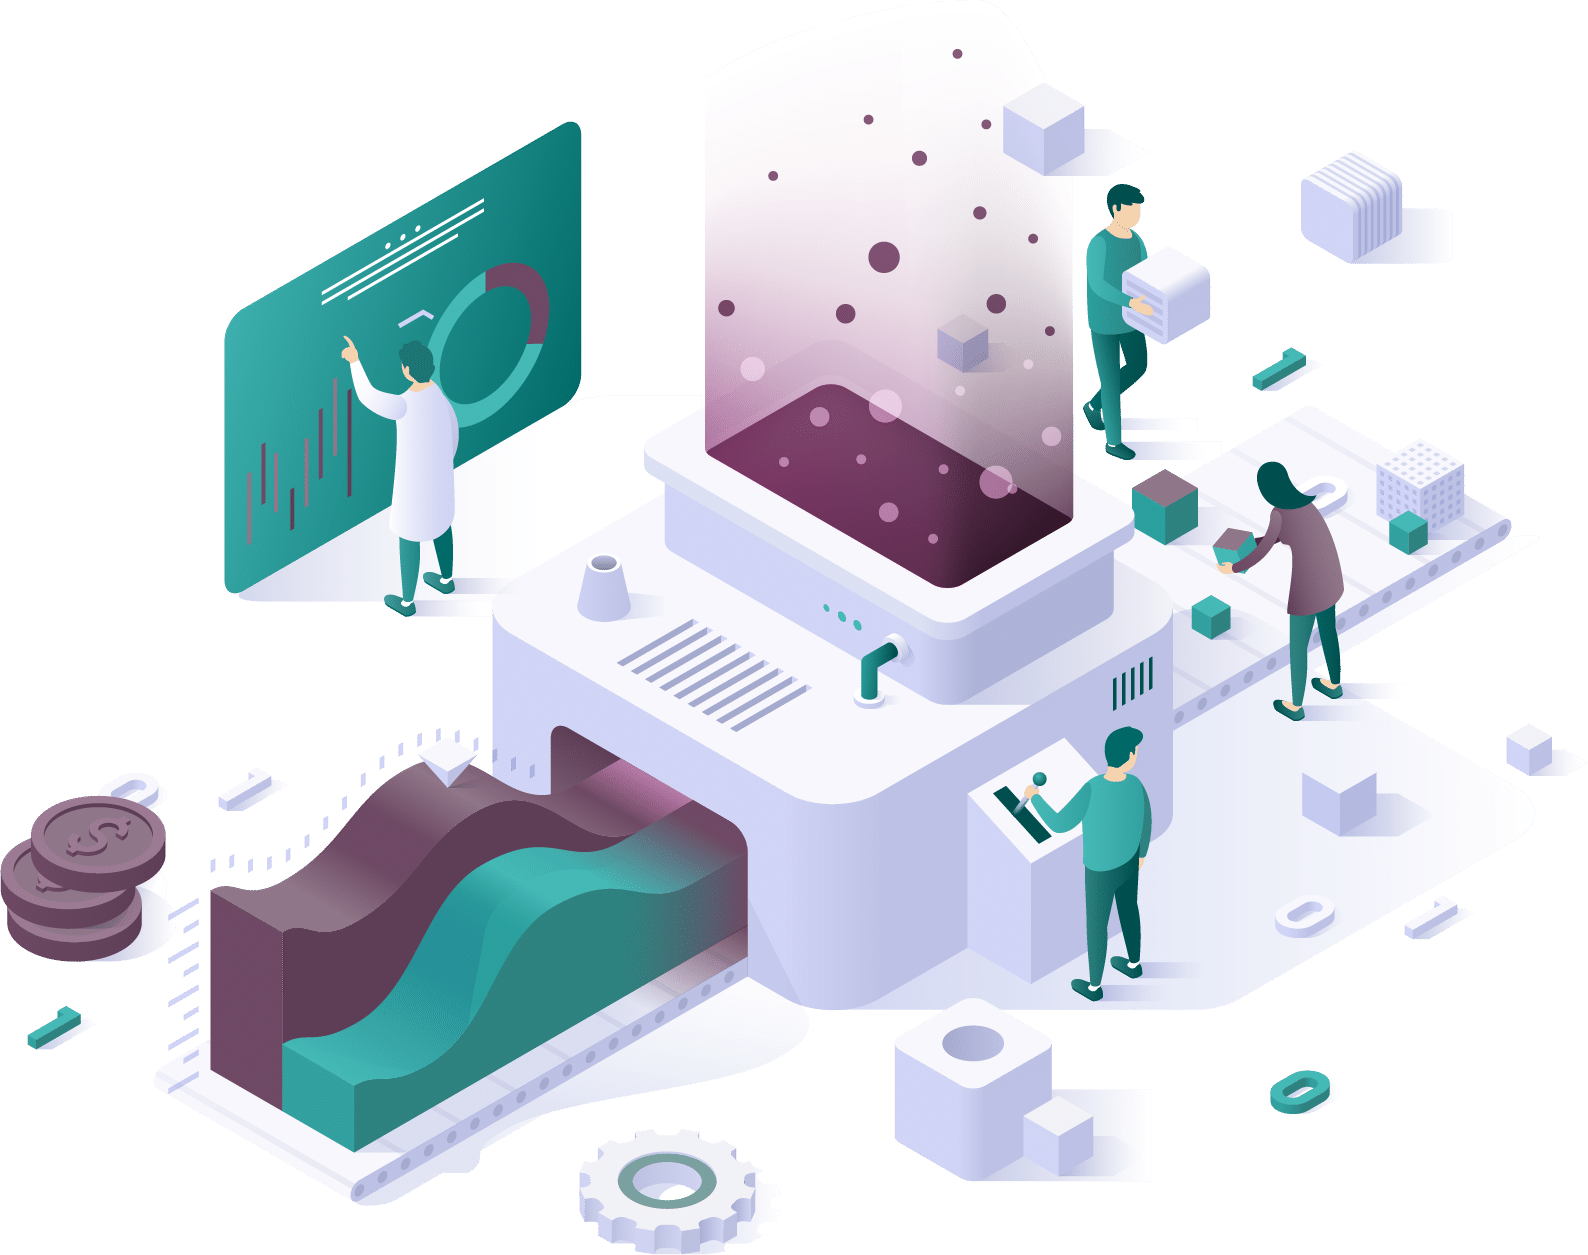 Isometric representation of application development